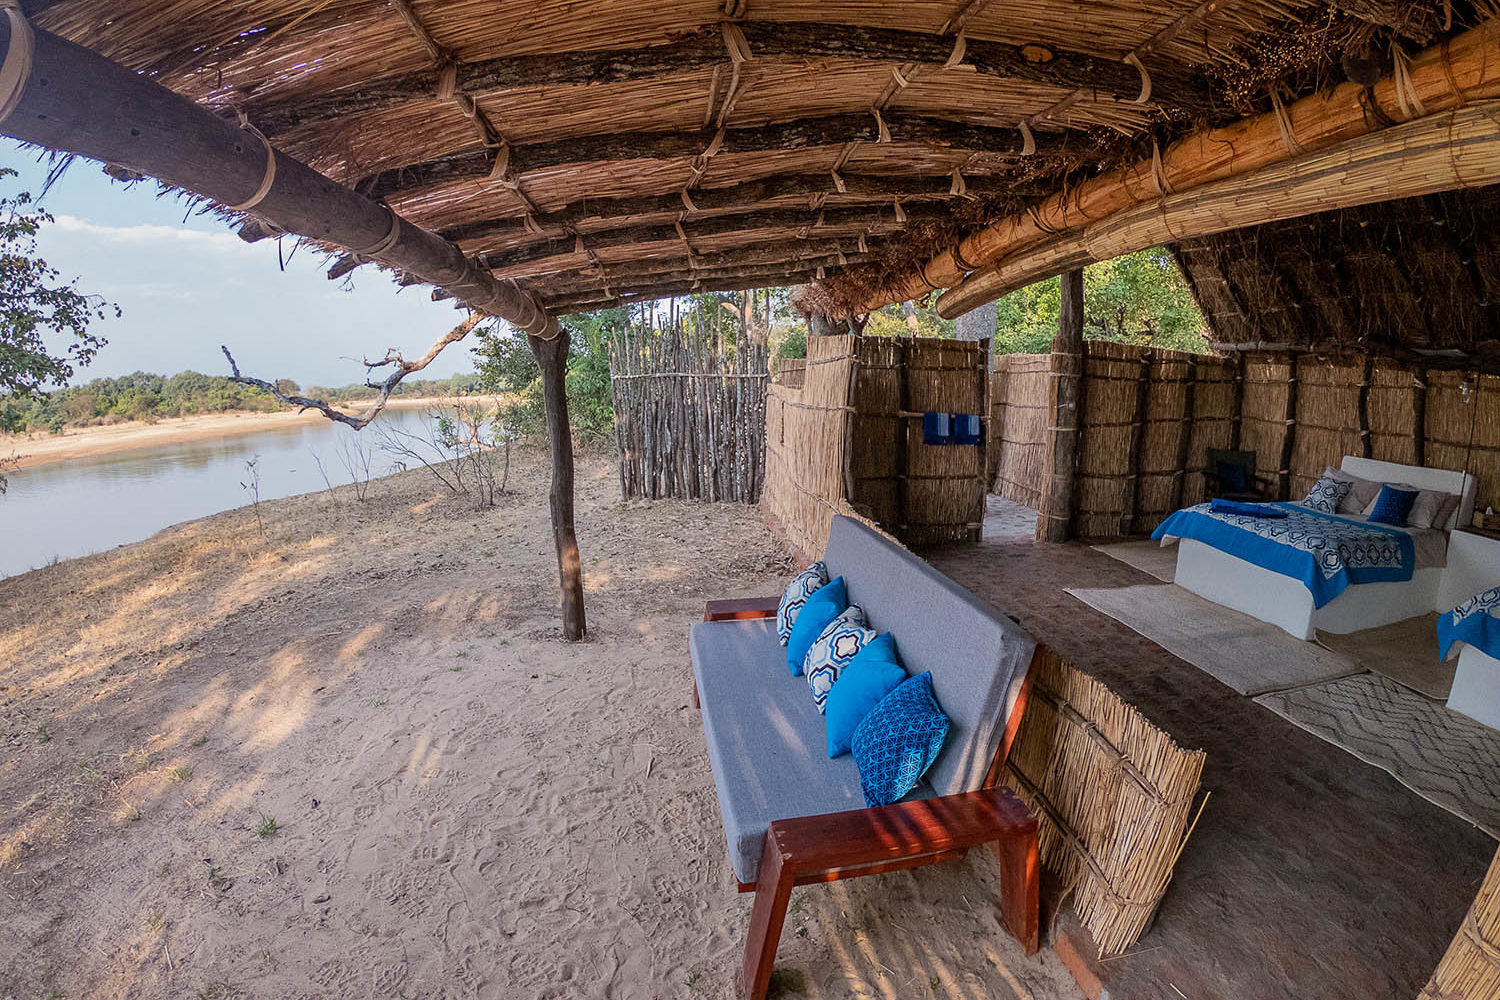 takwela-camp-north-luangwa-national-park-lodges-zambia-in-style-chalet-outlook